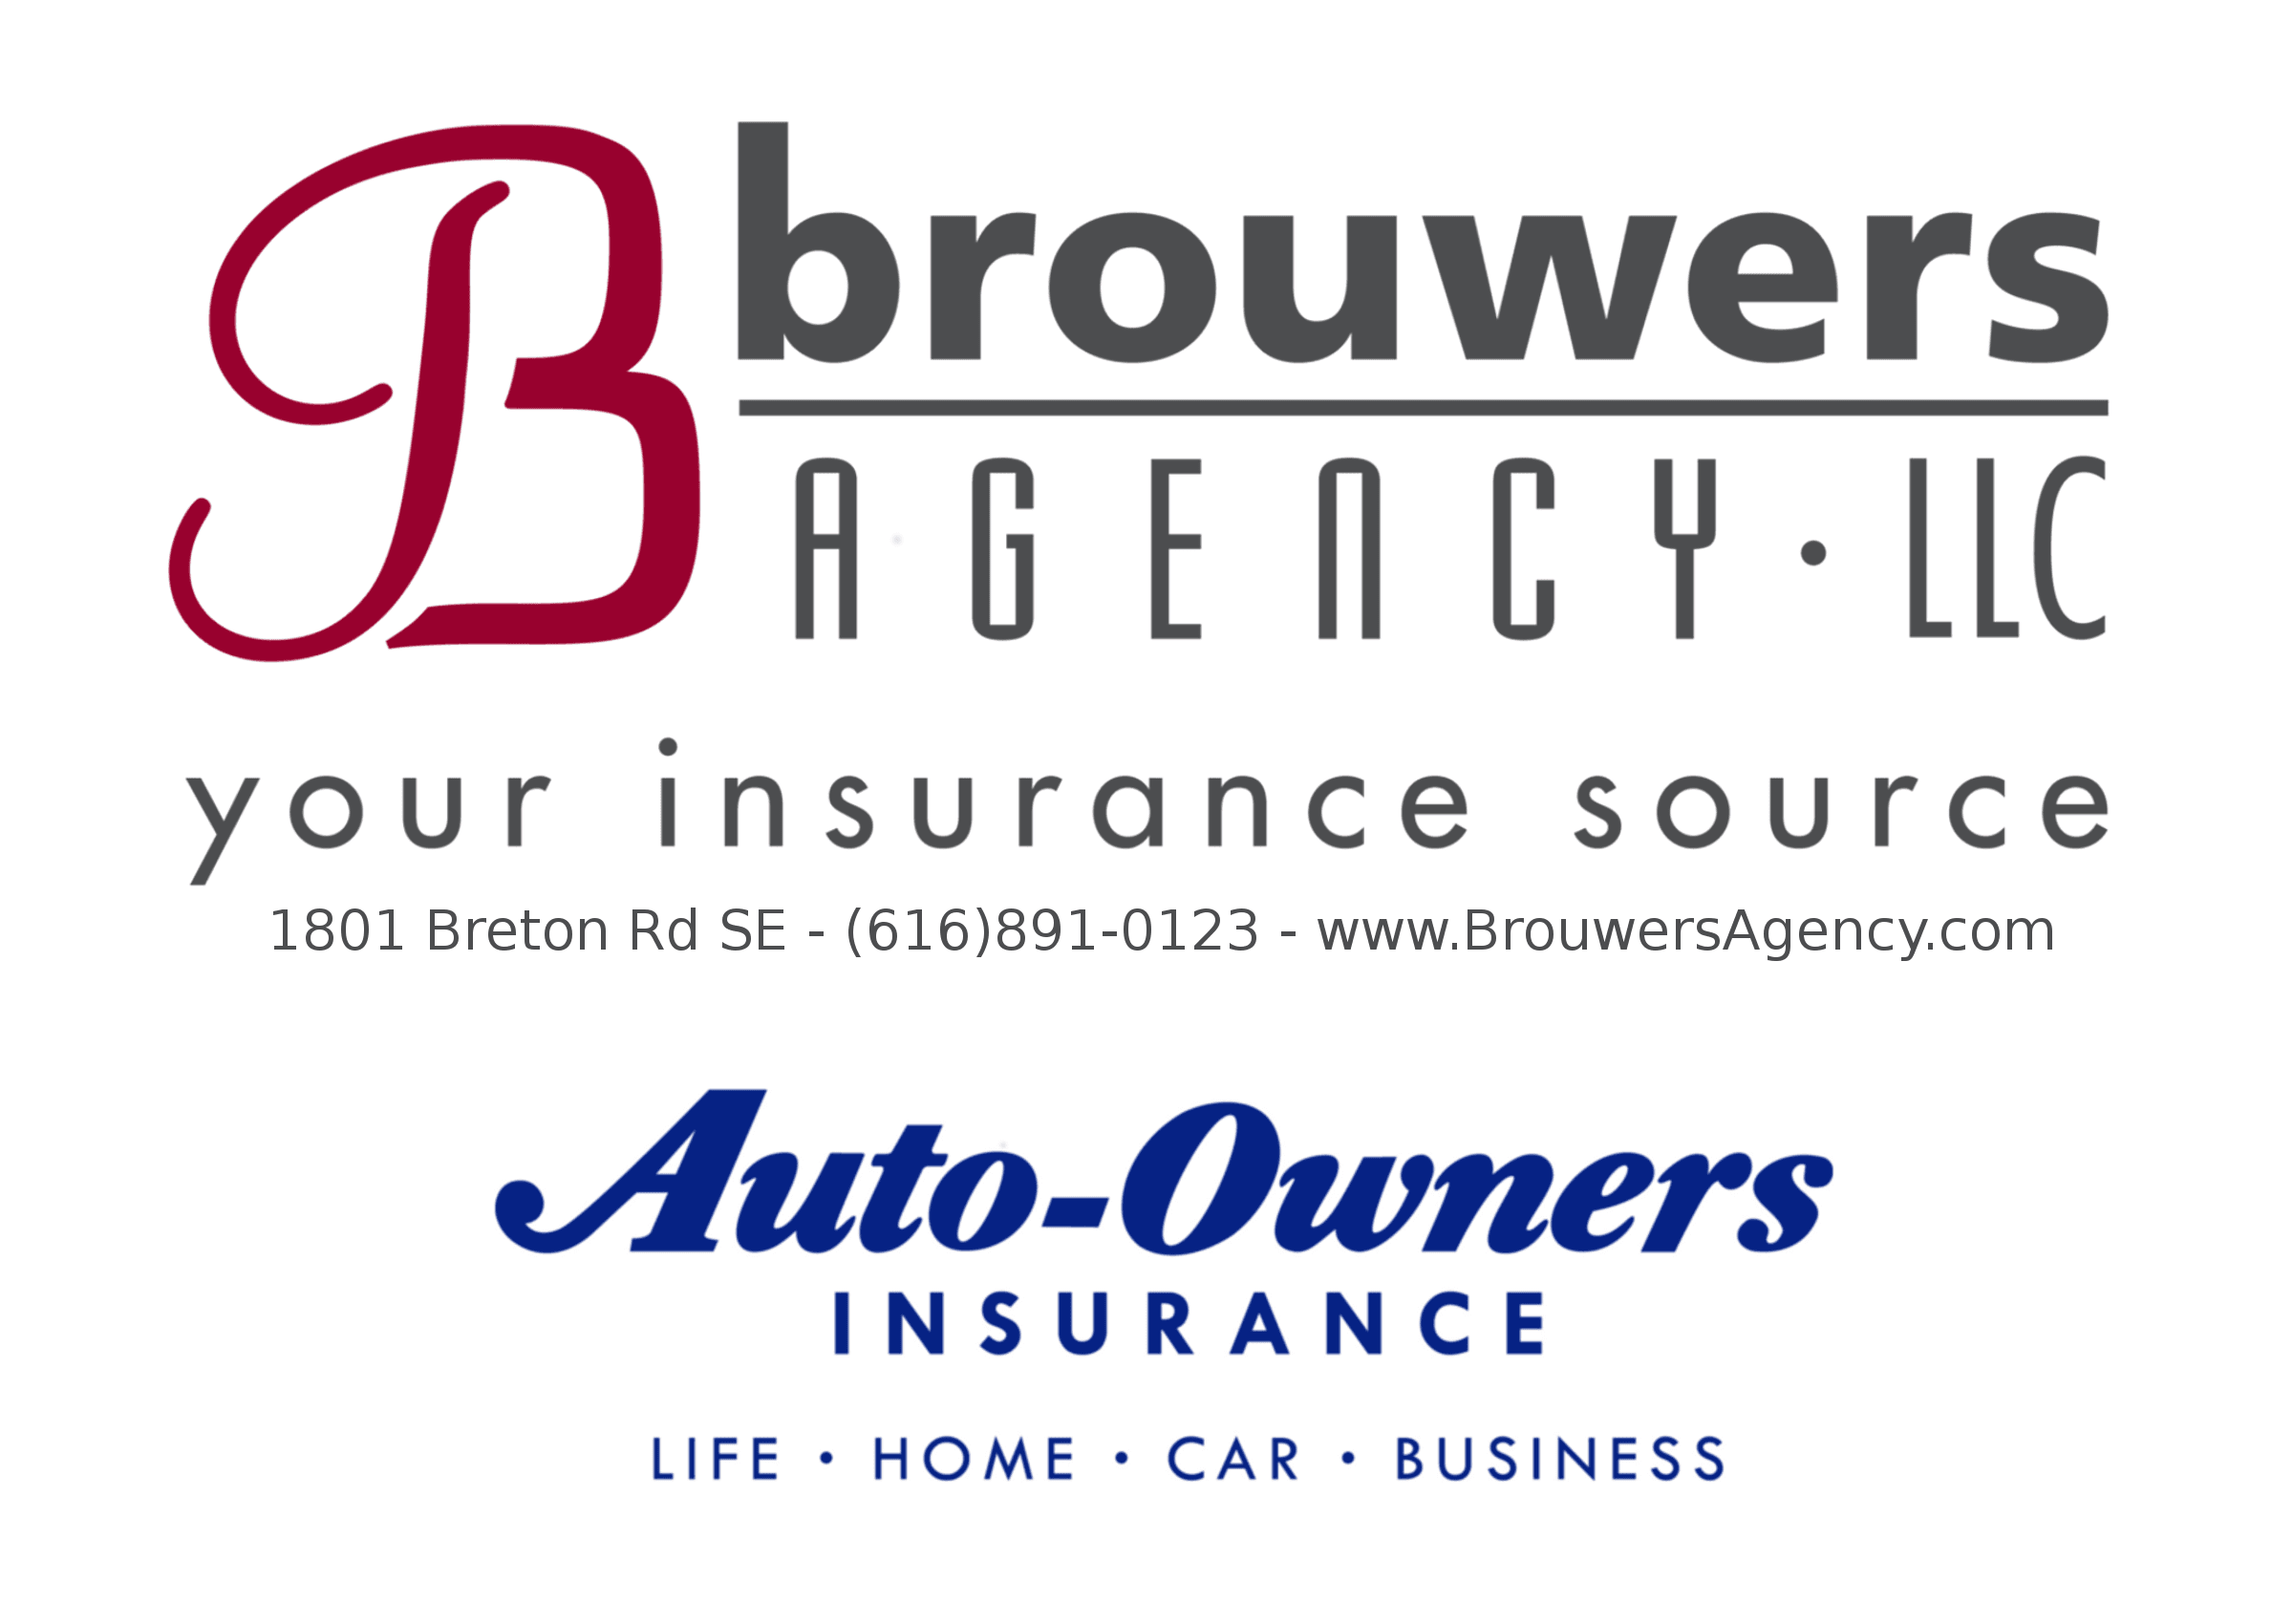 Brouswers Agency website